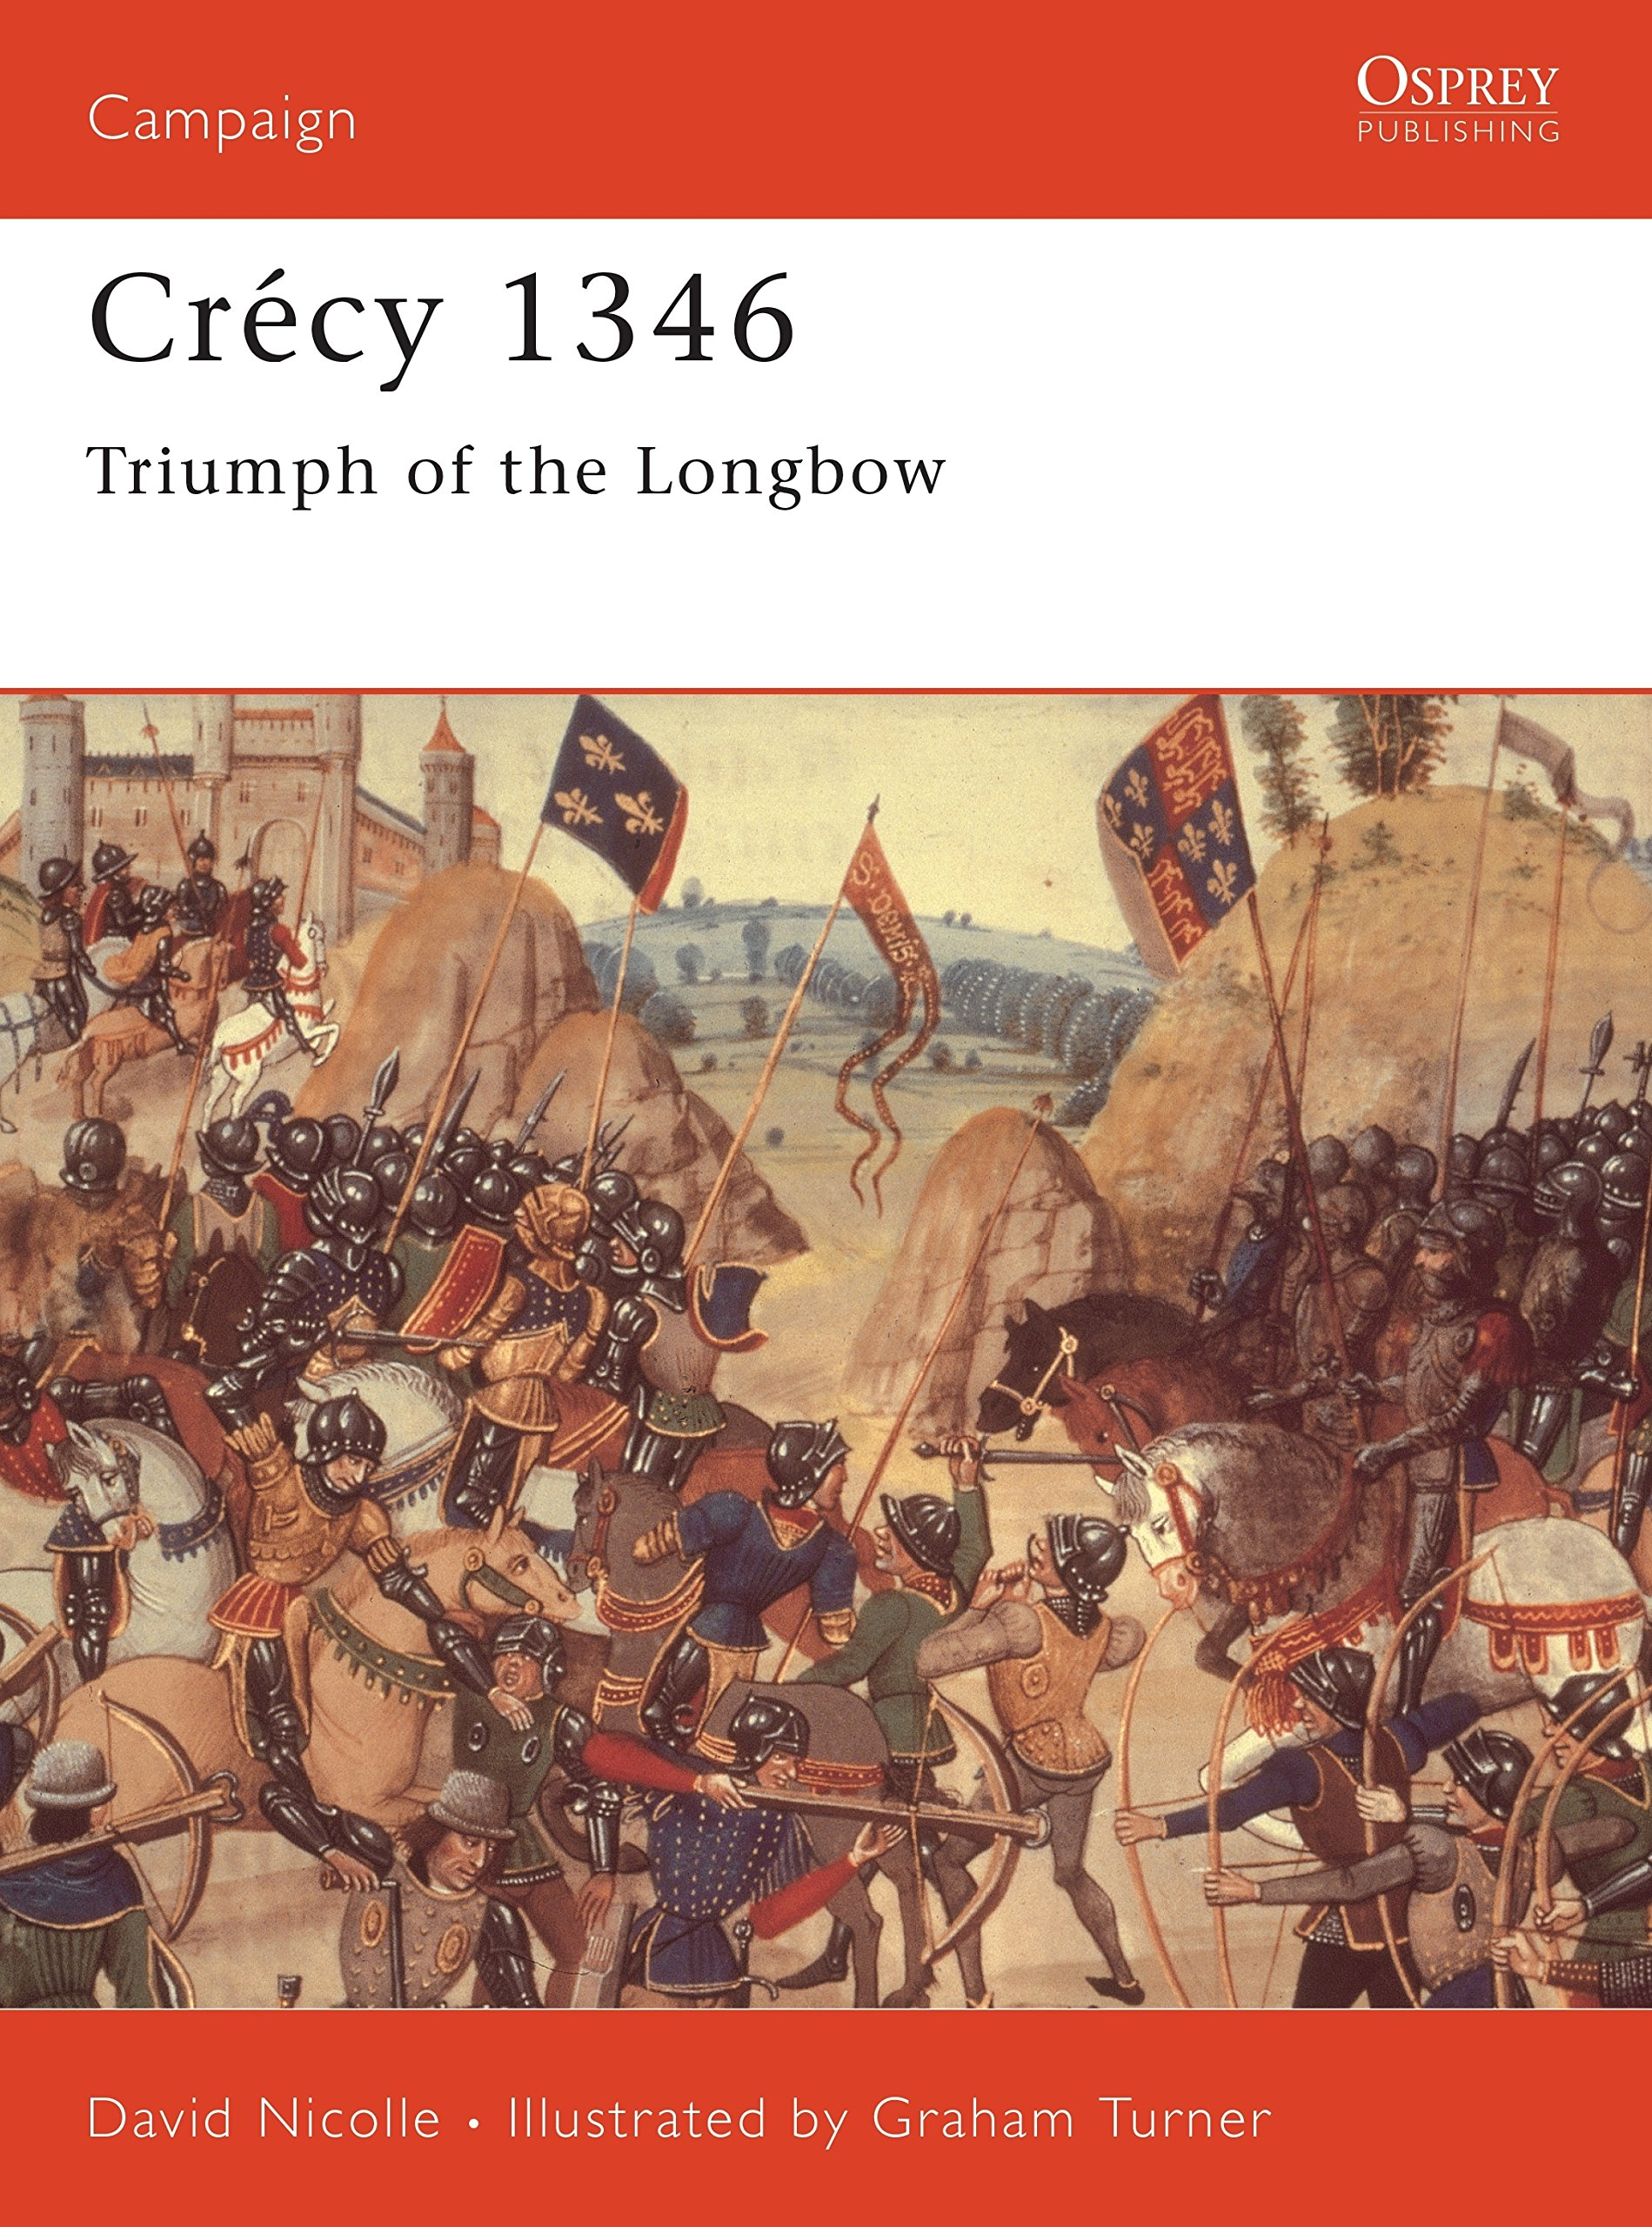 Amazon.com: Crécy 1346: Triumph of the longbow (Campaign) (9781855329669):  David Nicolle, Graham Turner: Books